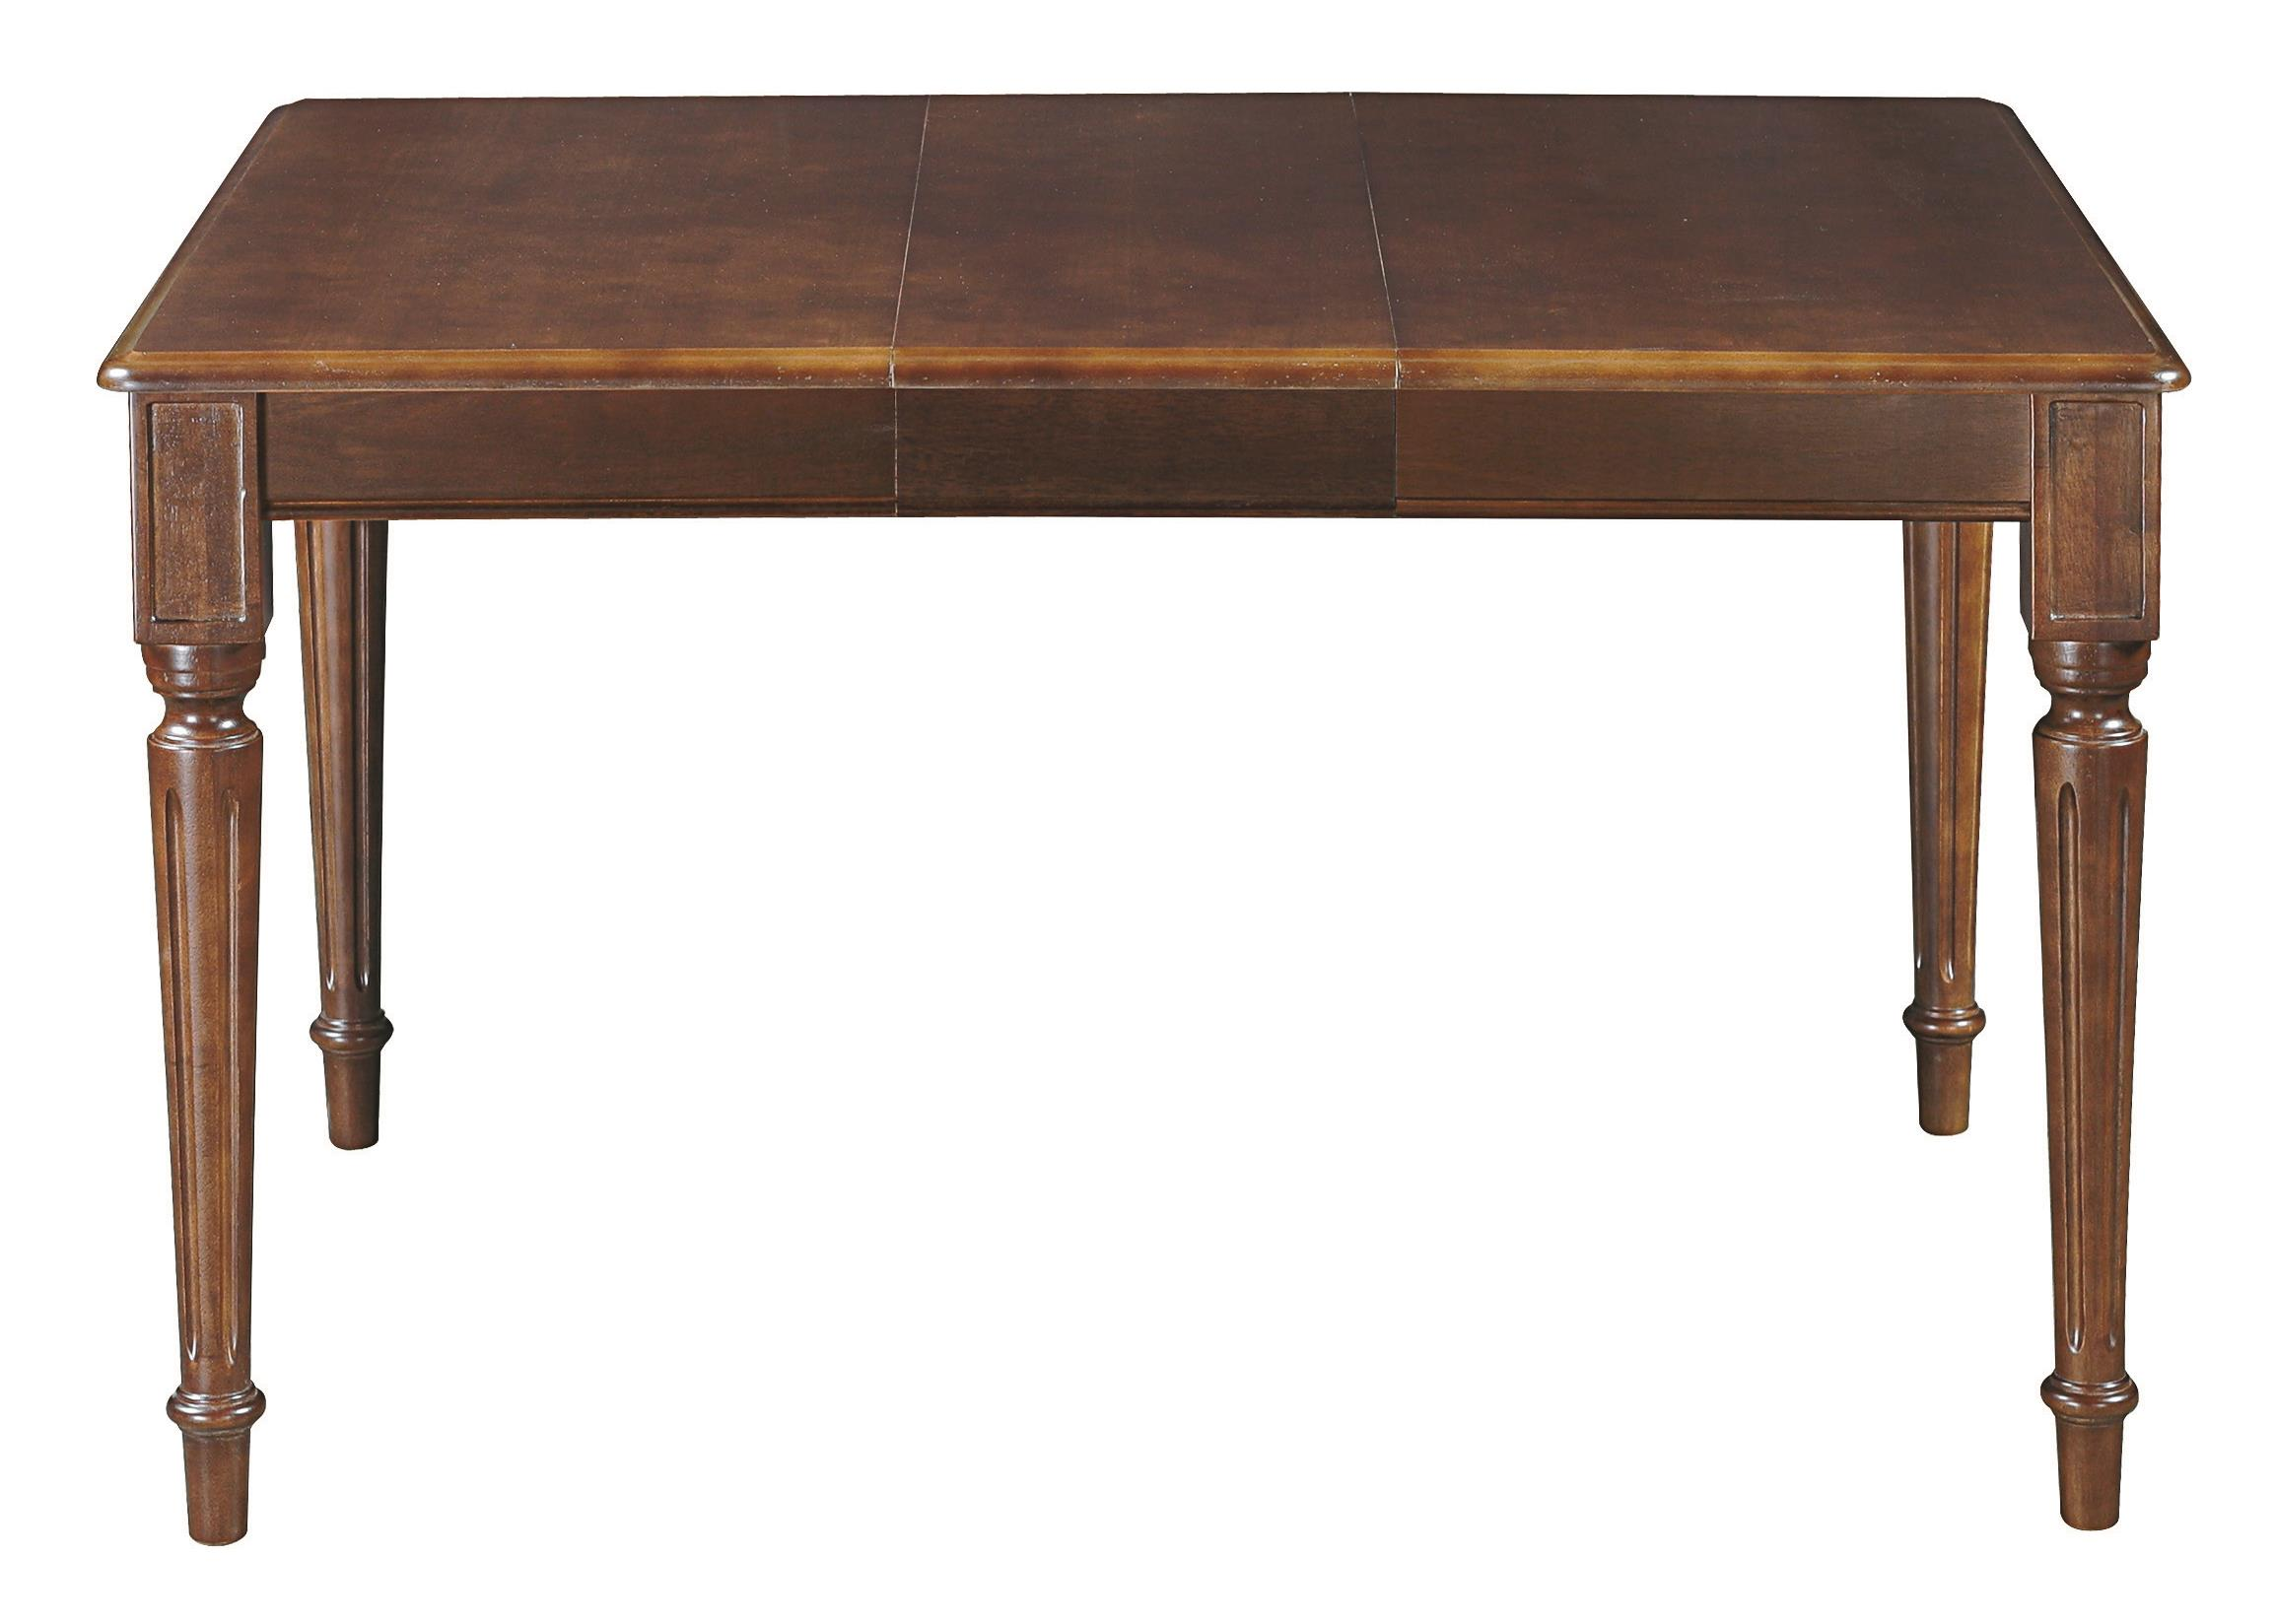 Custom Dining Customizable Square Dining Table by Bassett at Crowley Furniture & Mattress